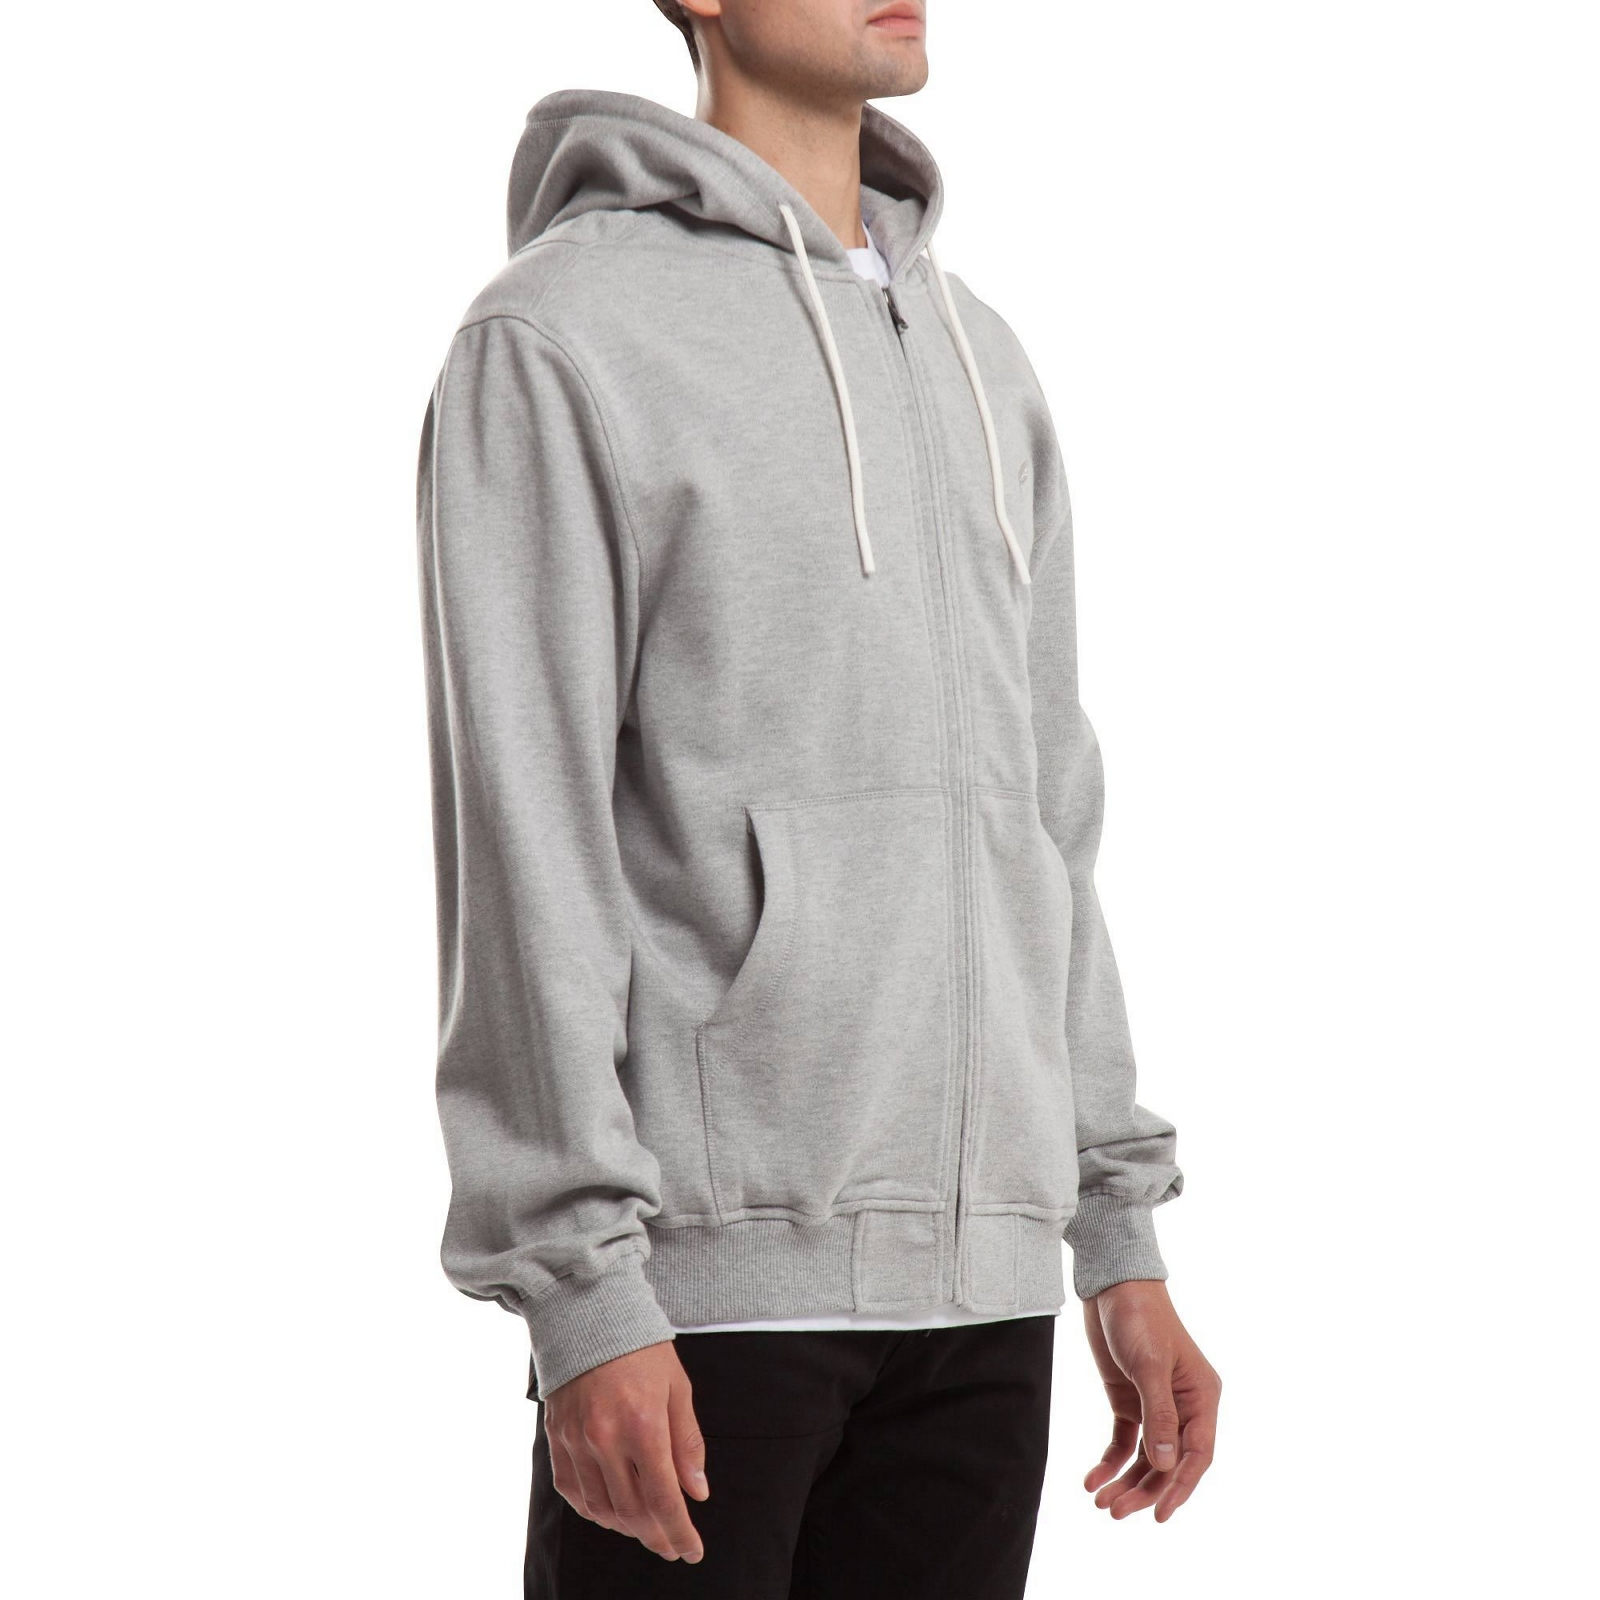 【PUBLISH BRAND/パブリッシュブランド】INDEX ZIP FLEECE HOODIE パーカー / HEATHER